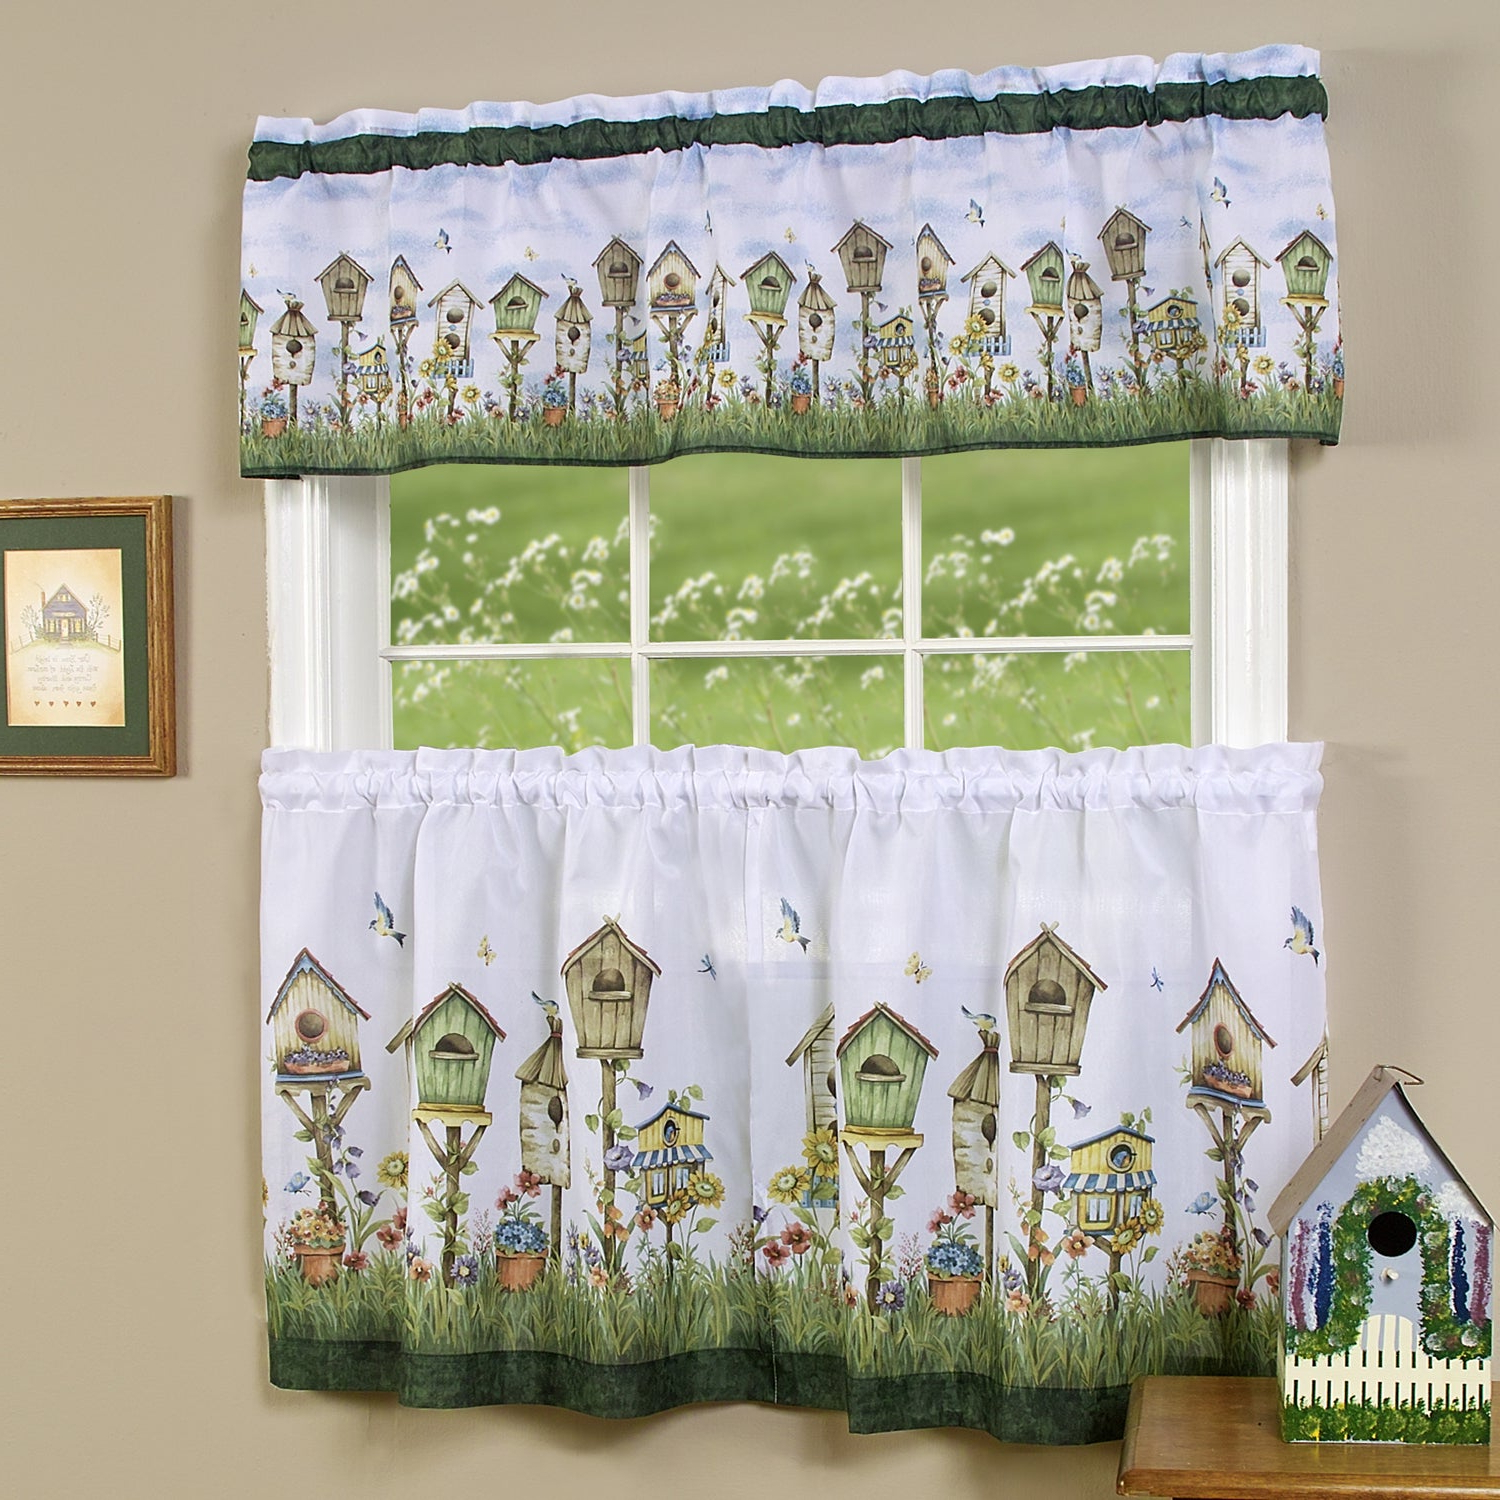 Most Current Traditional Two Piece Tailored Tier And Valance Window Curtains With Regard To Traditional Two Piece Tailored Tier And Valance Window Curtains Set With Whimsical Birdhouse Print – 36 Inch (View 4 of 20)